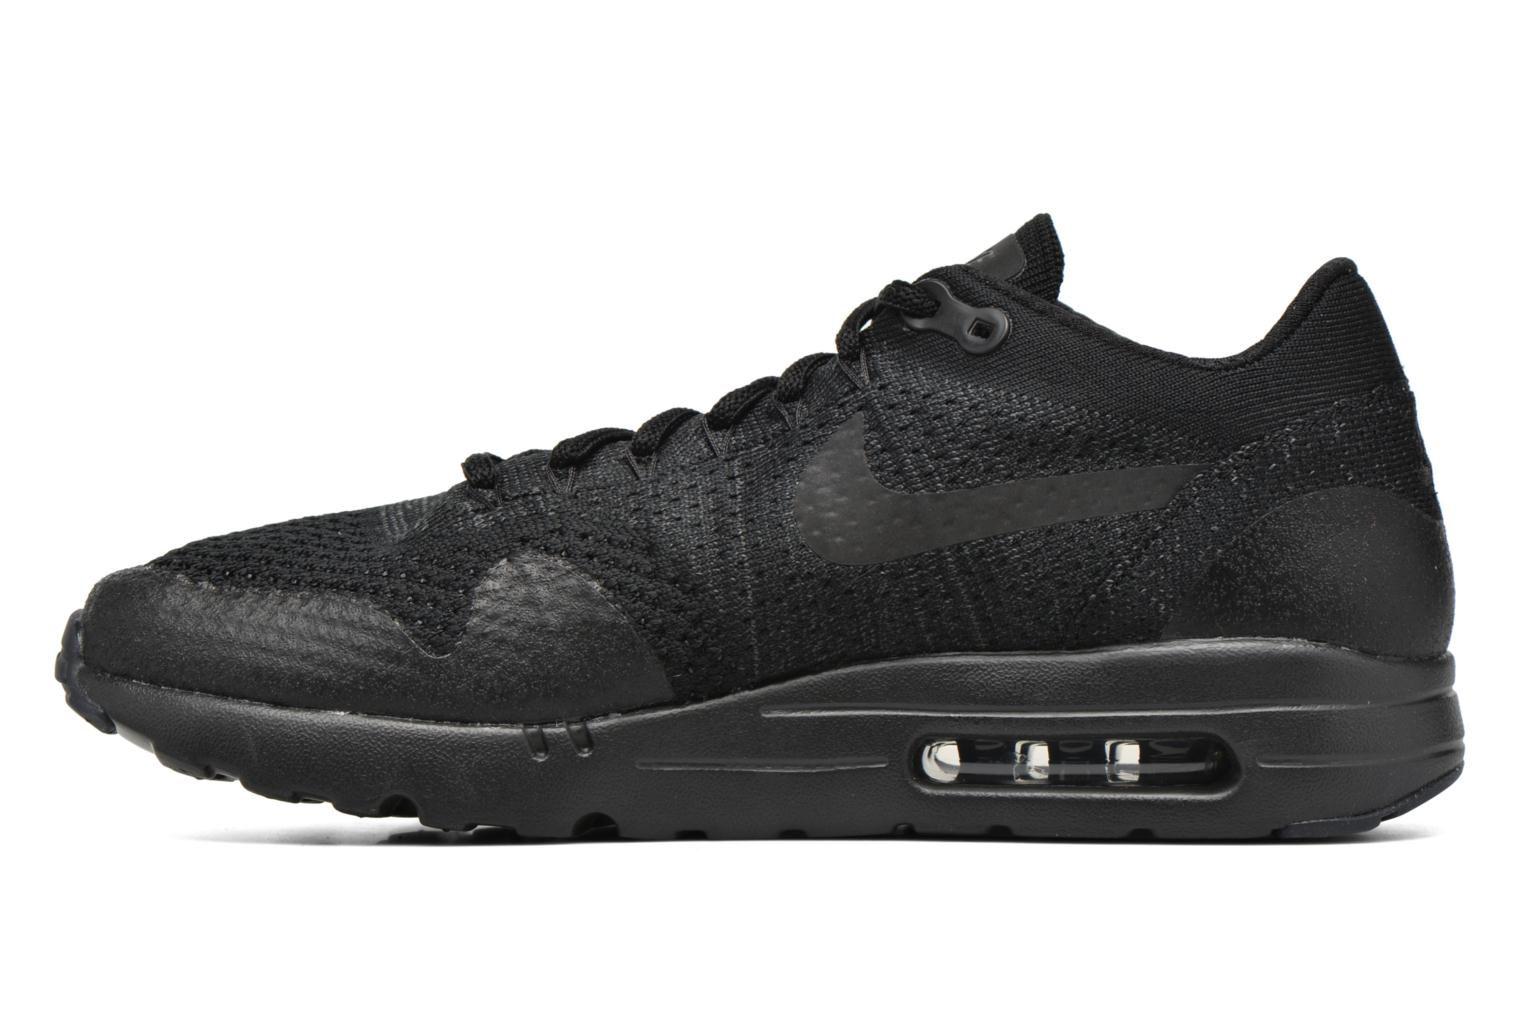 Nike Air Max 1 Ultra Flyknit Black/Black-Anthracite